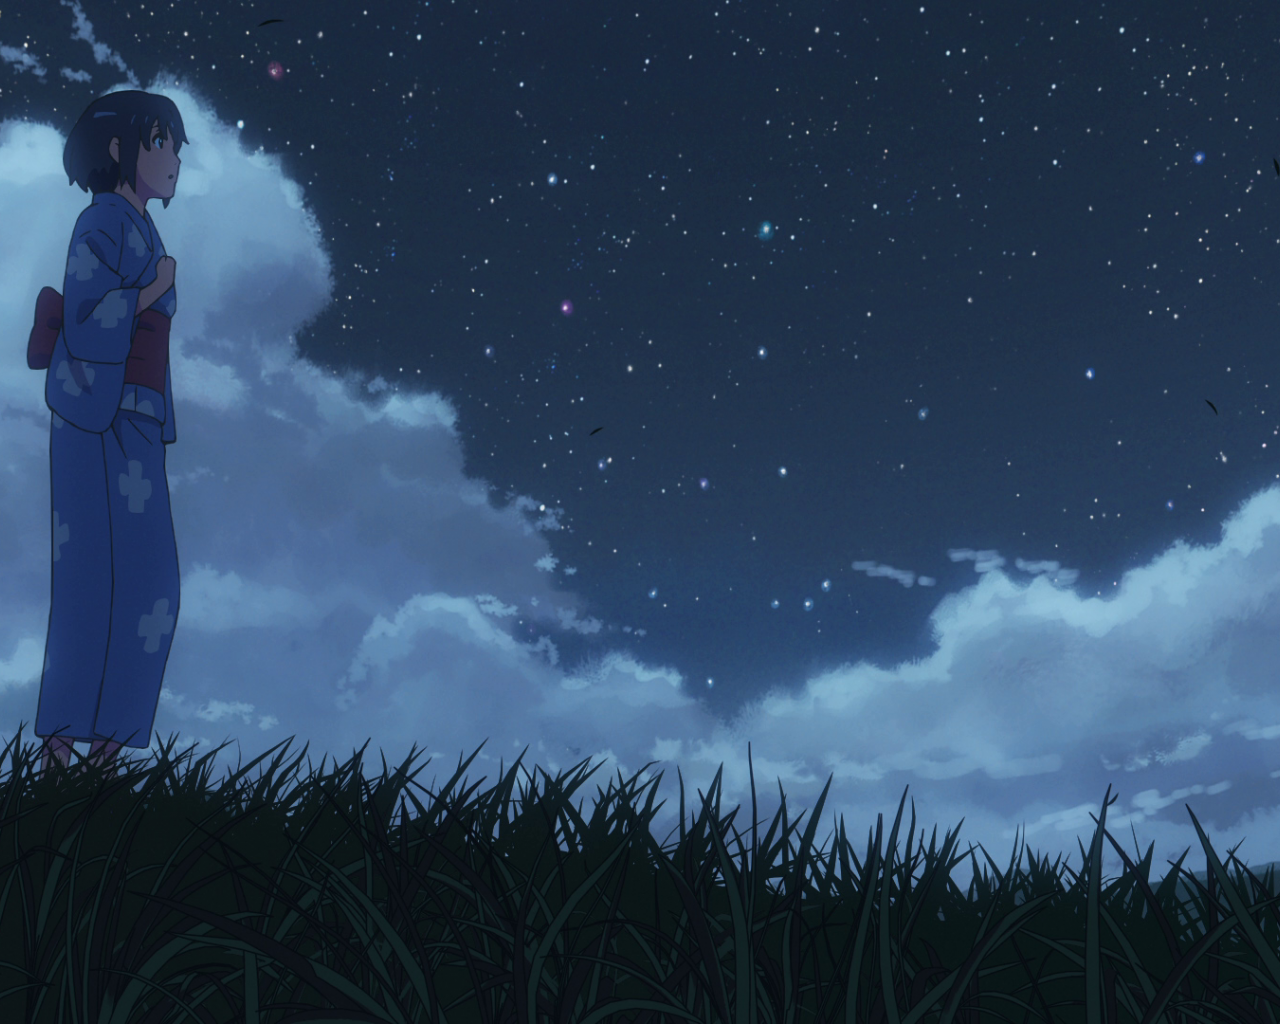 Free Download Kimi No Na Wa Your Name Wallpaper Hd Download